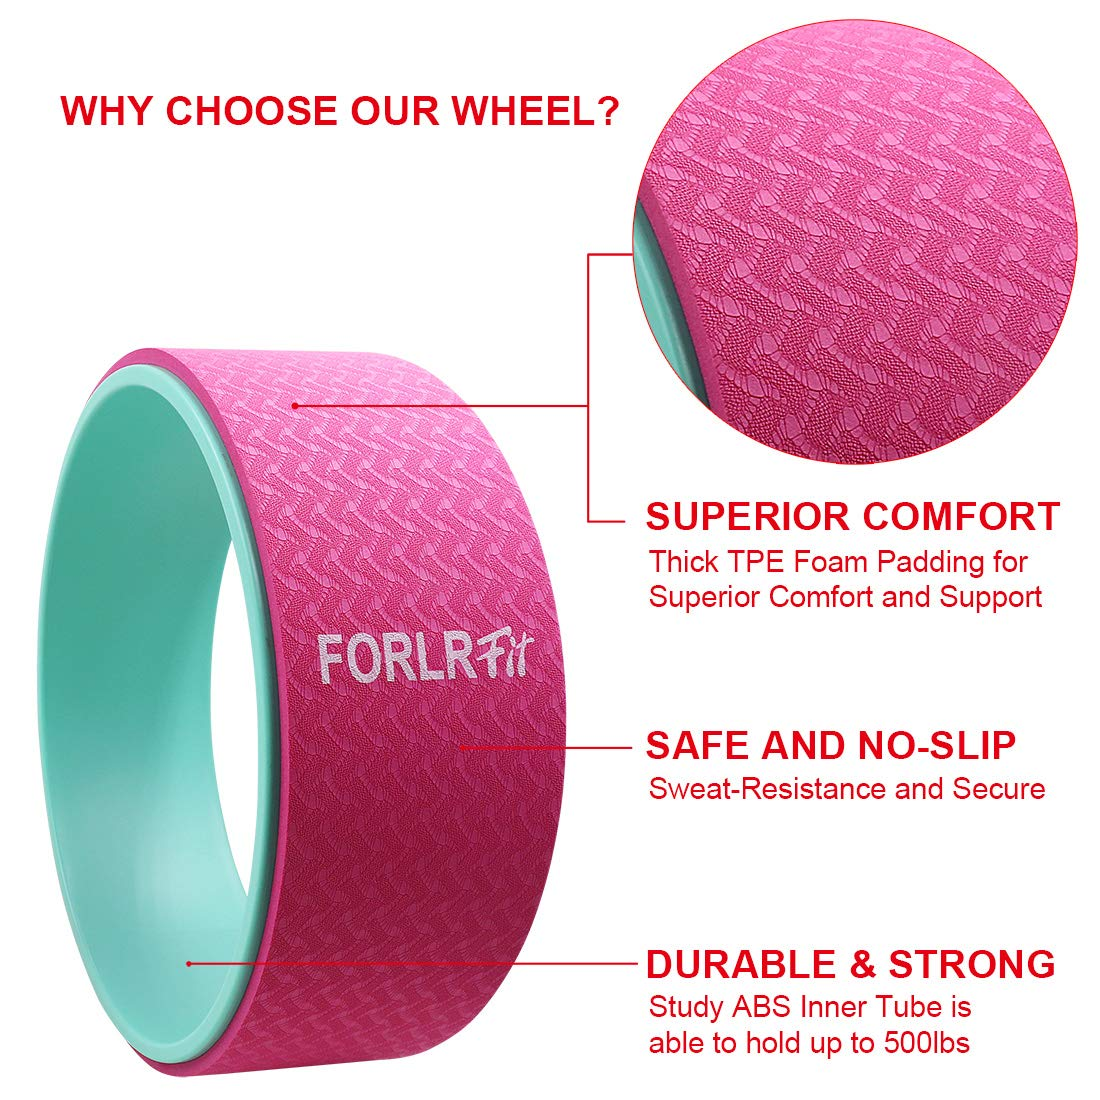 FORLRFIT Yoga Wheel-12.6 x 5 Strong /& Comfortable Yoga Prop Wheel for Yoga Poses,Perfect for Stretching,Improving Flexibility and Backbends,Relieve Back Pain